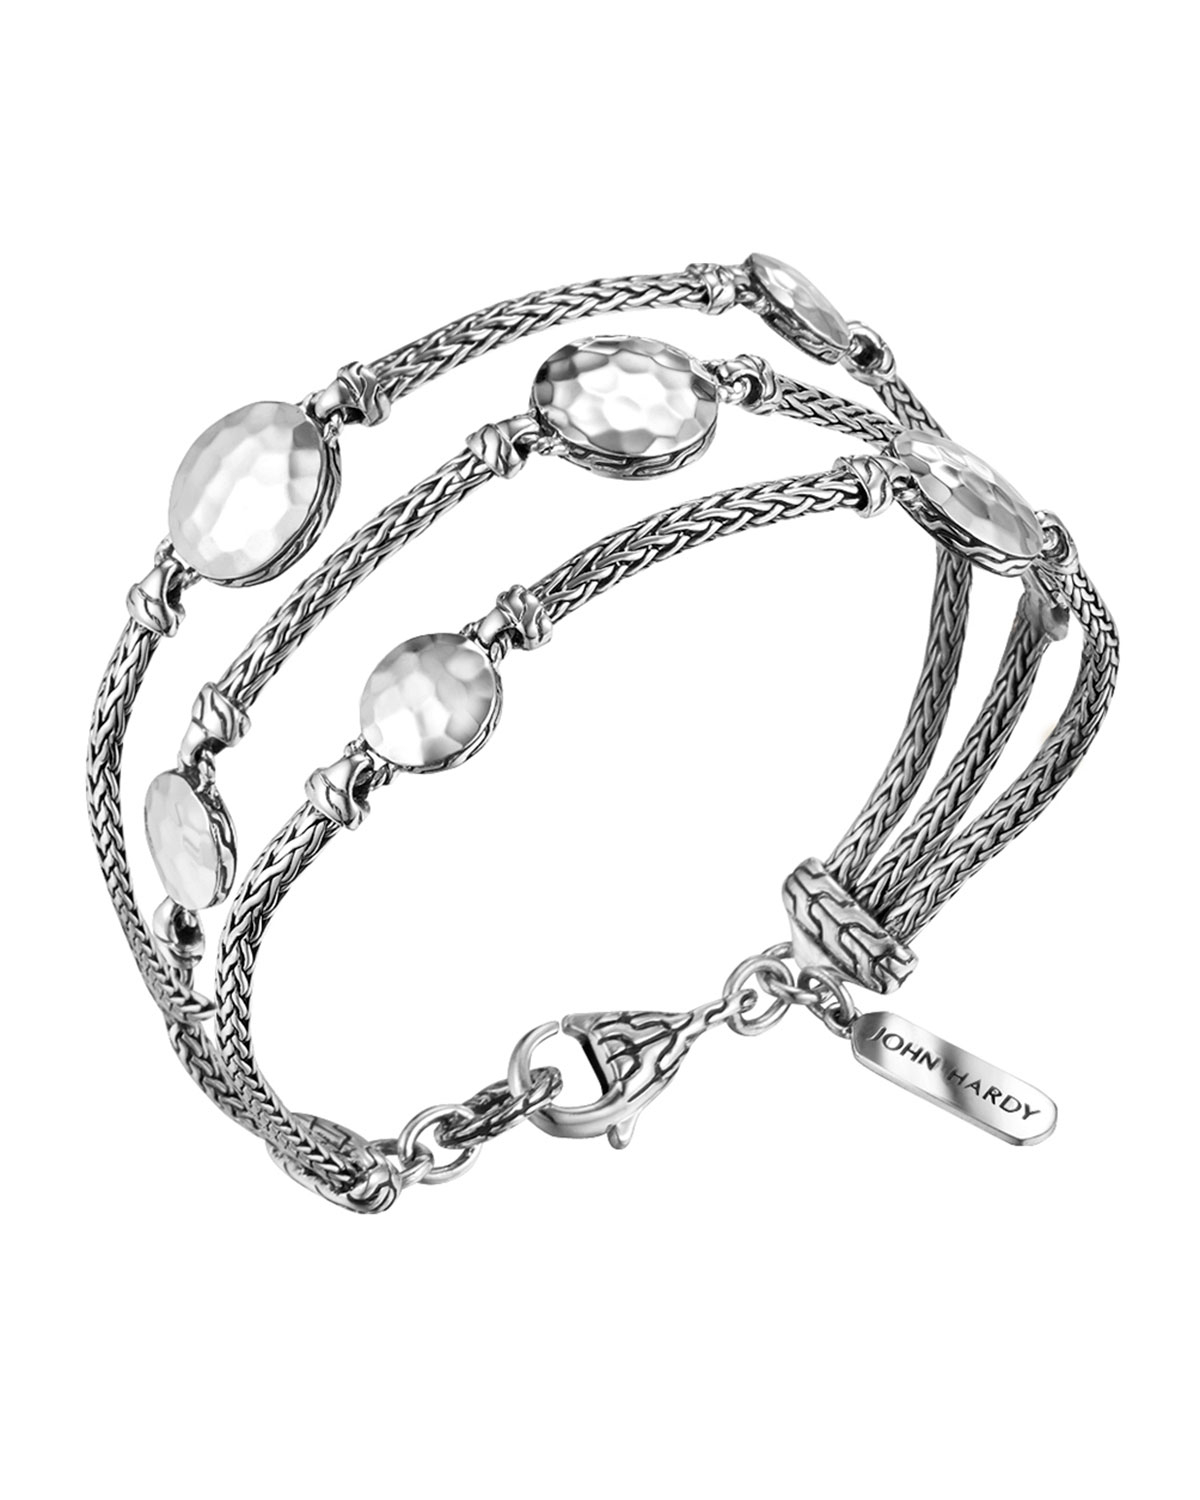 John hardy palu silver three row multi station bracelet in for John hardy jewelry factory bali